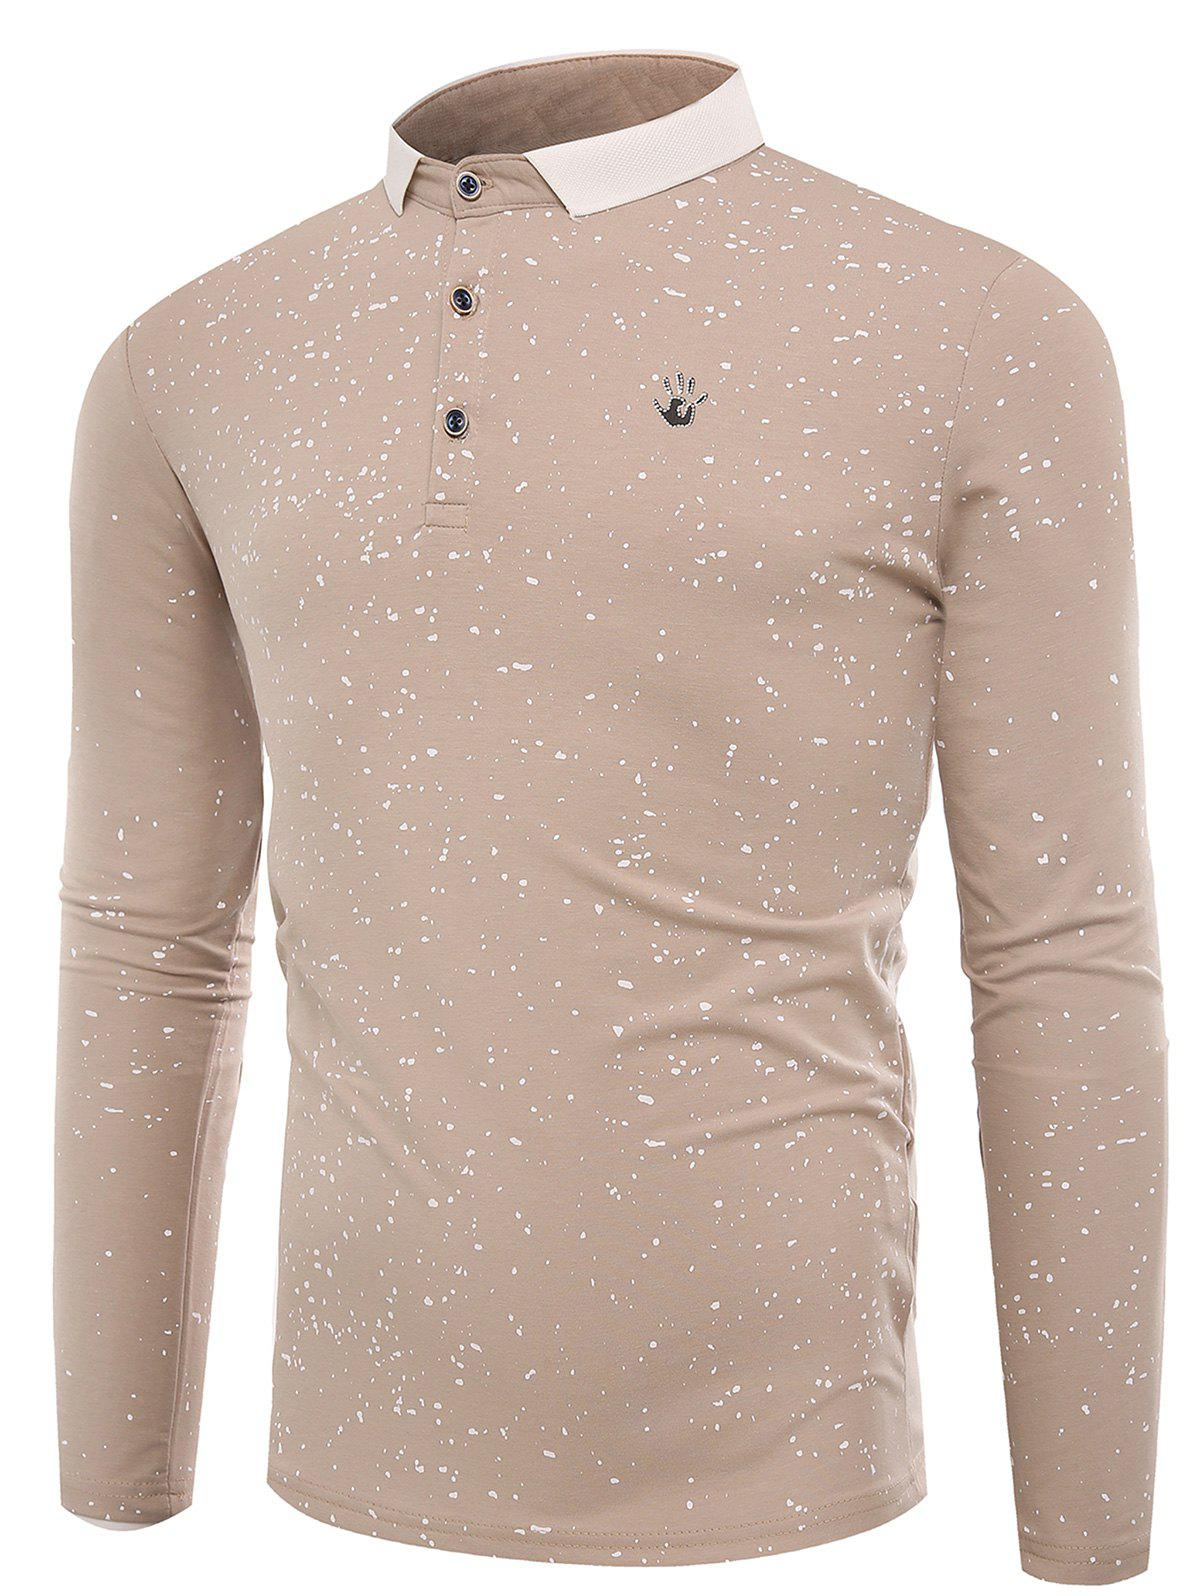 Splatter Paint T-shirt à manches longues Polo - Abricot L